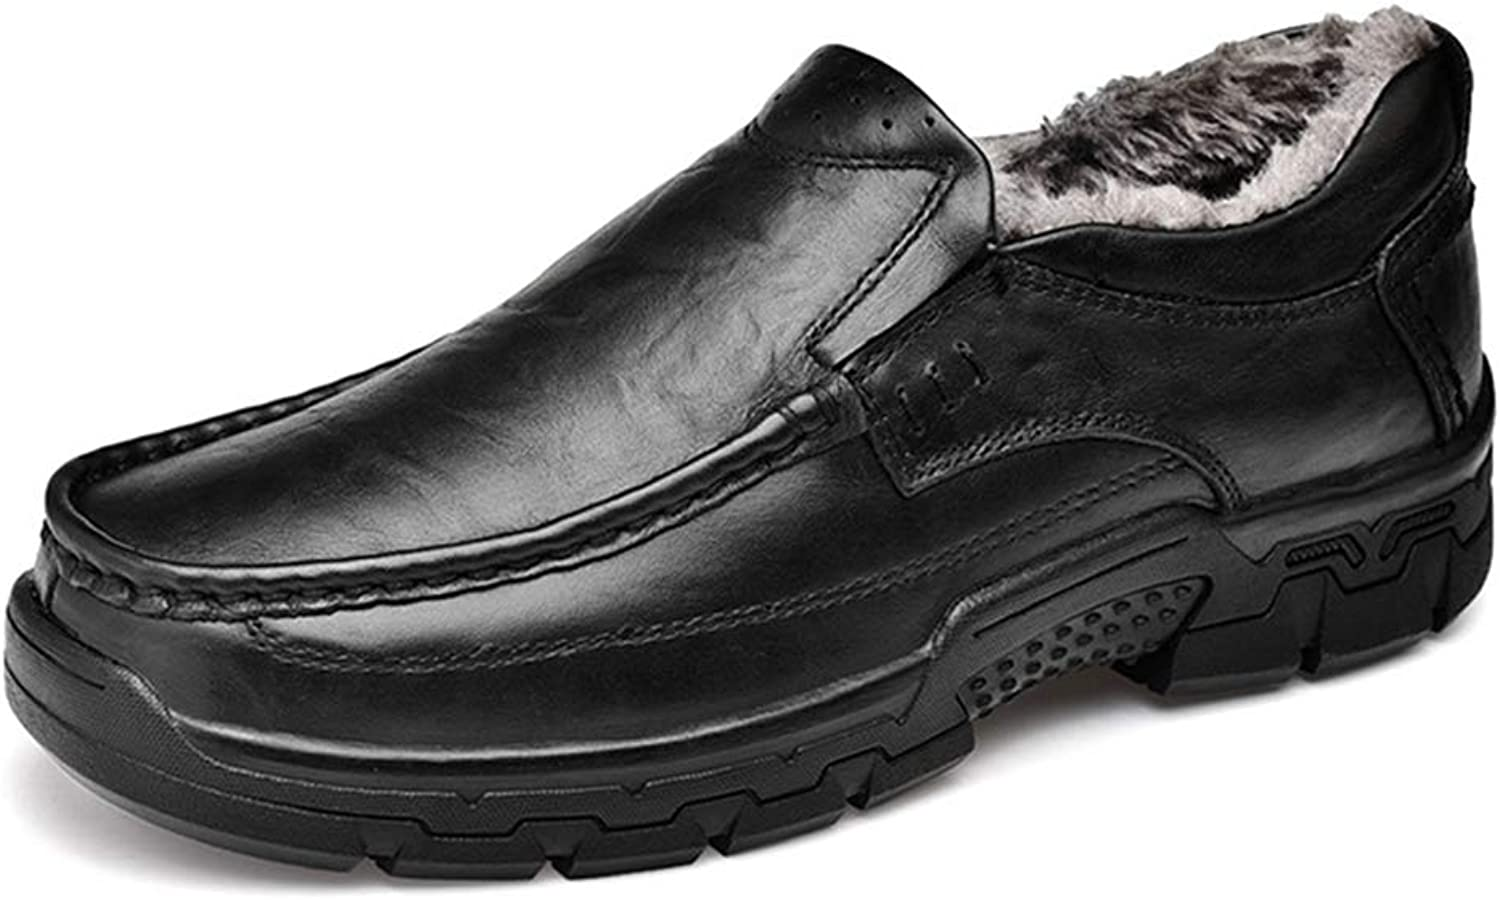 Phil Betty Mens Loafers shoes Warm Non-Slip Wear-Resistant Comfortable Flat Casual shoes